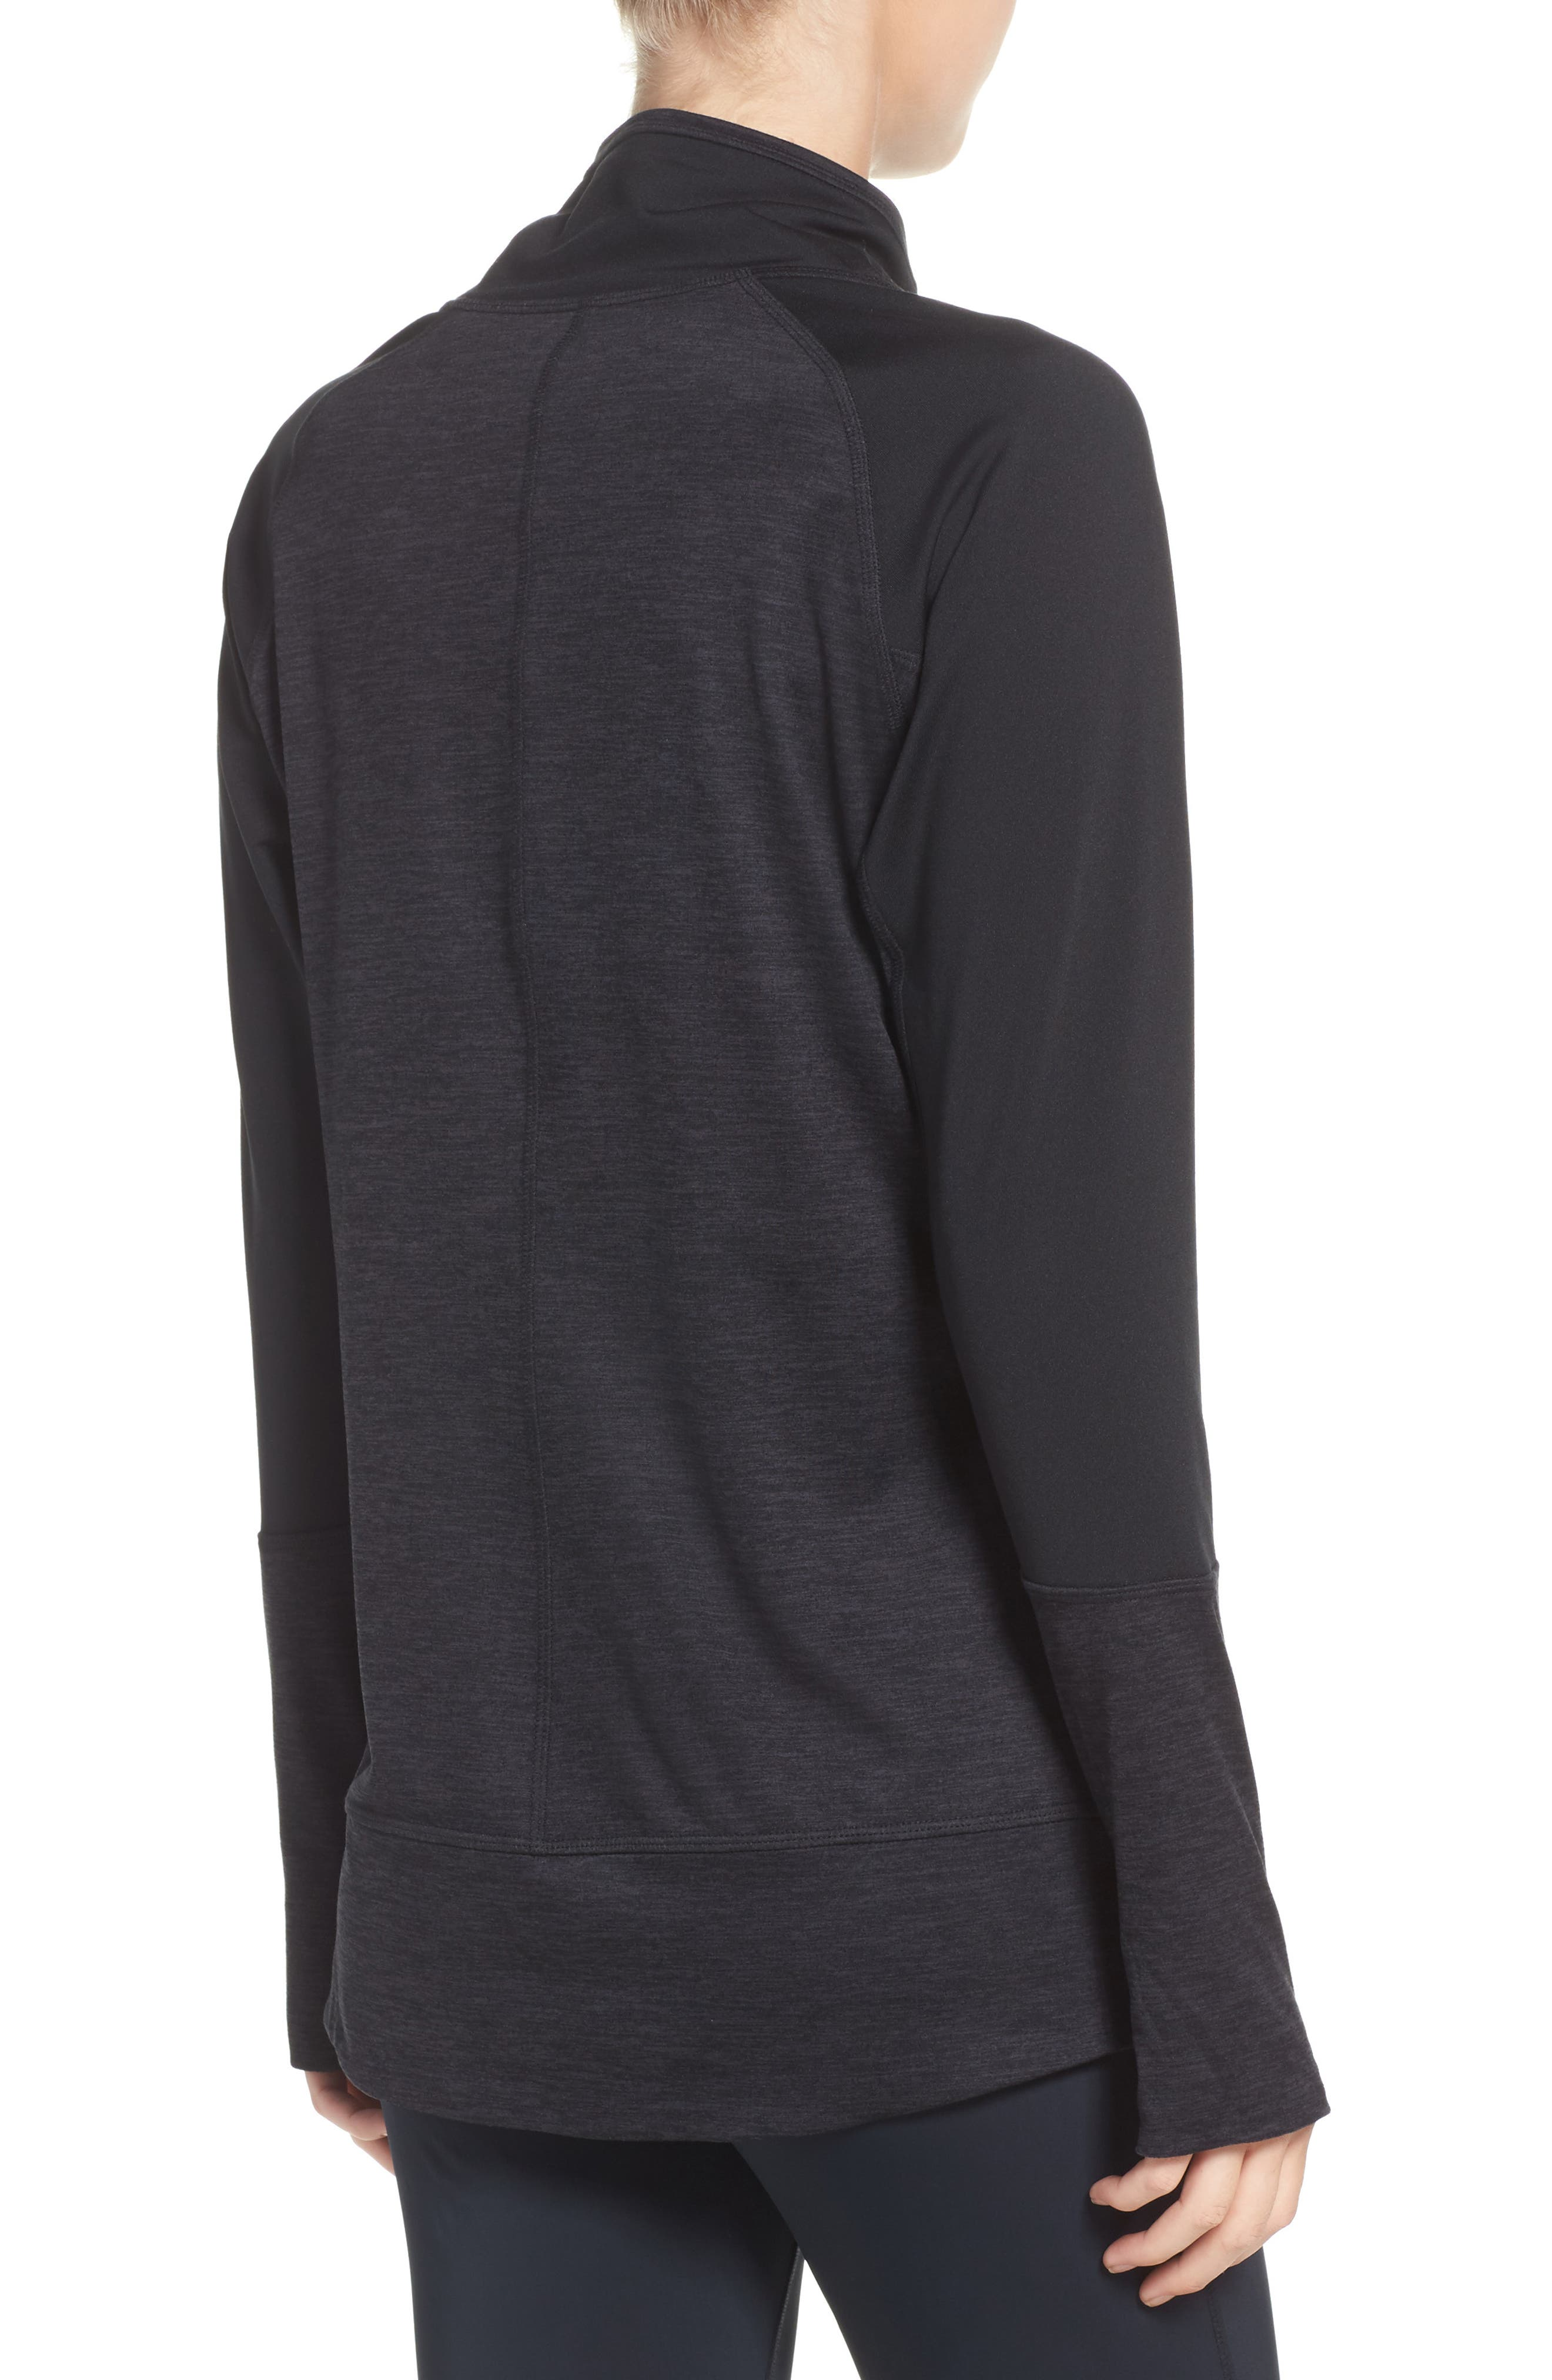 Performance Pullover,                             Alternate thumbnail 2, color,                             001